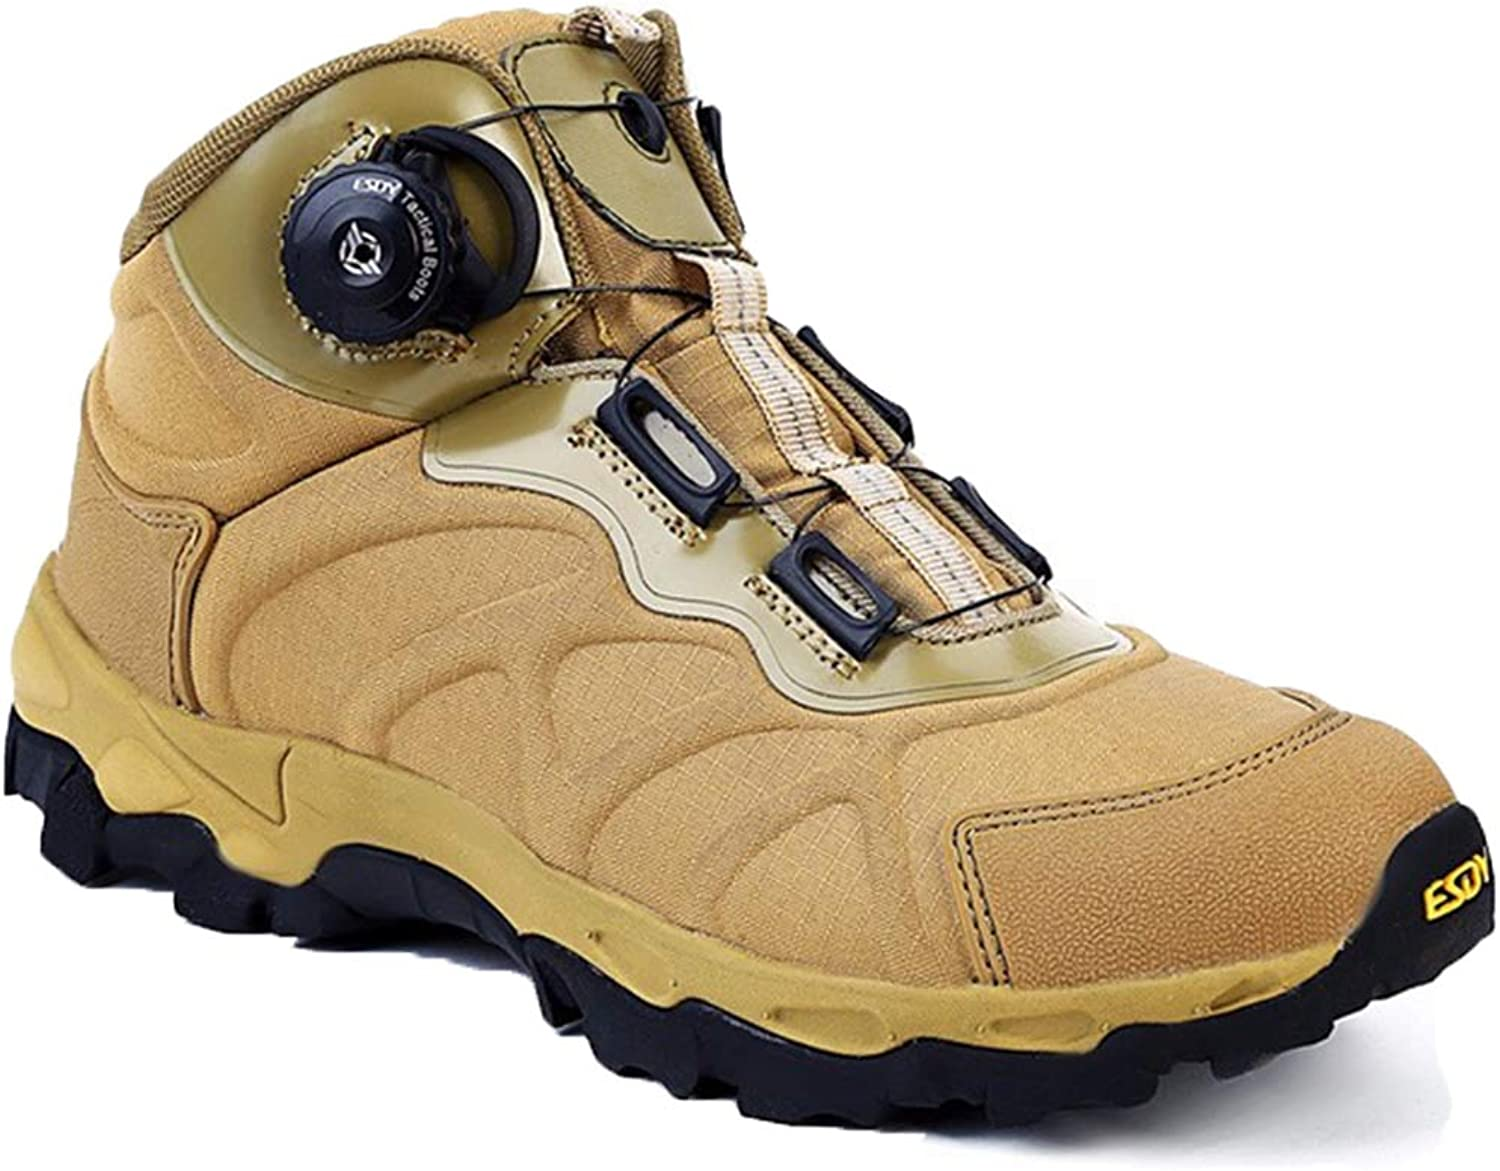 Bergort Tactical Military Combat Boots Outdoor Hiking shoes Lightweight Sneakers